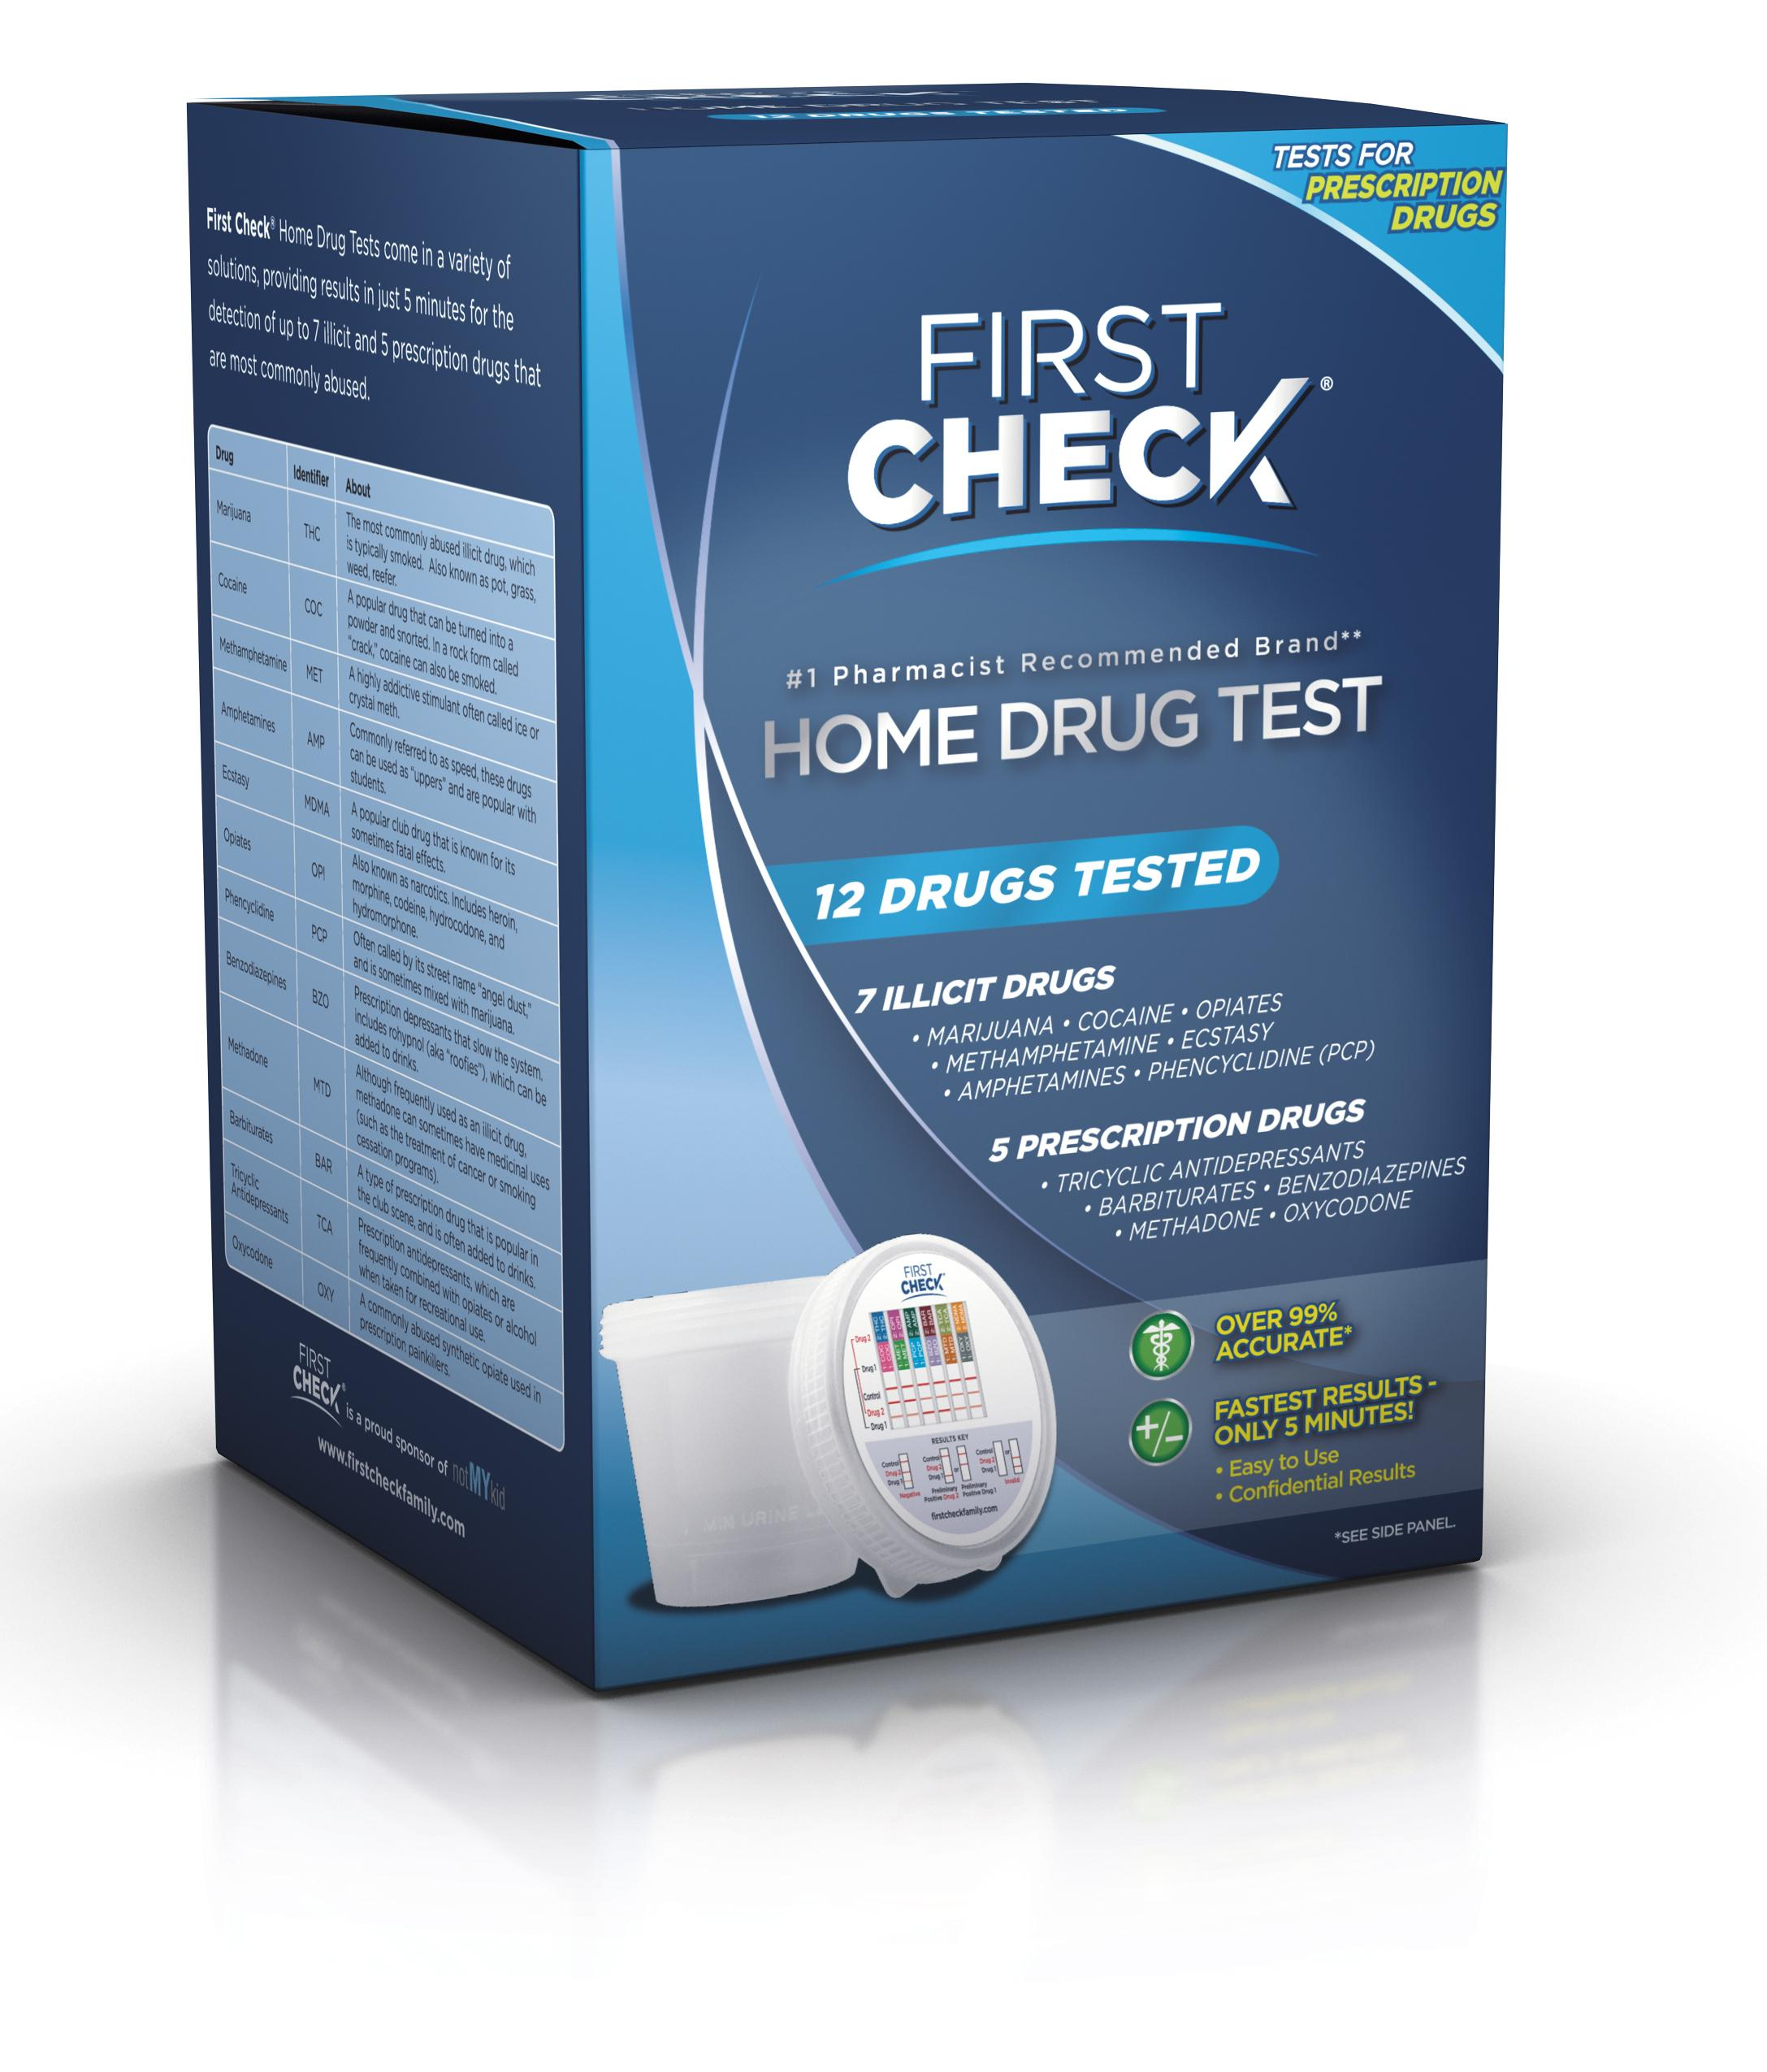 Home Drug Test Kits | FDA Cleared | Accurate At Home Drug Test